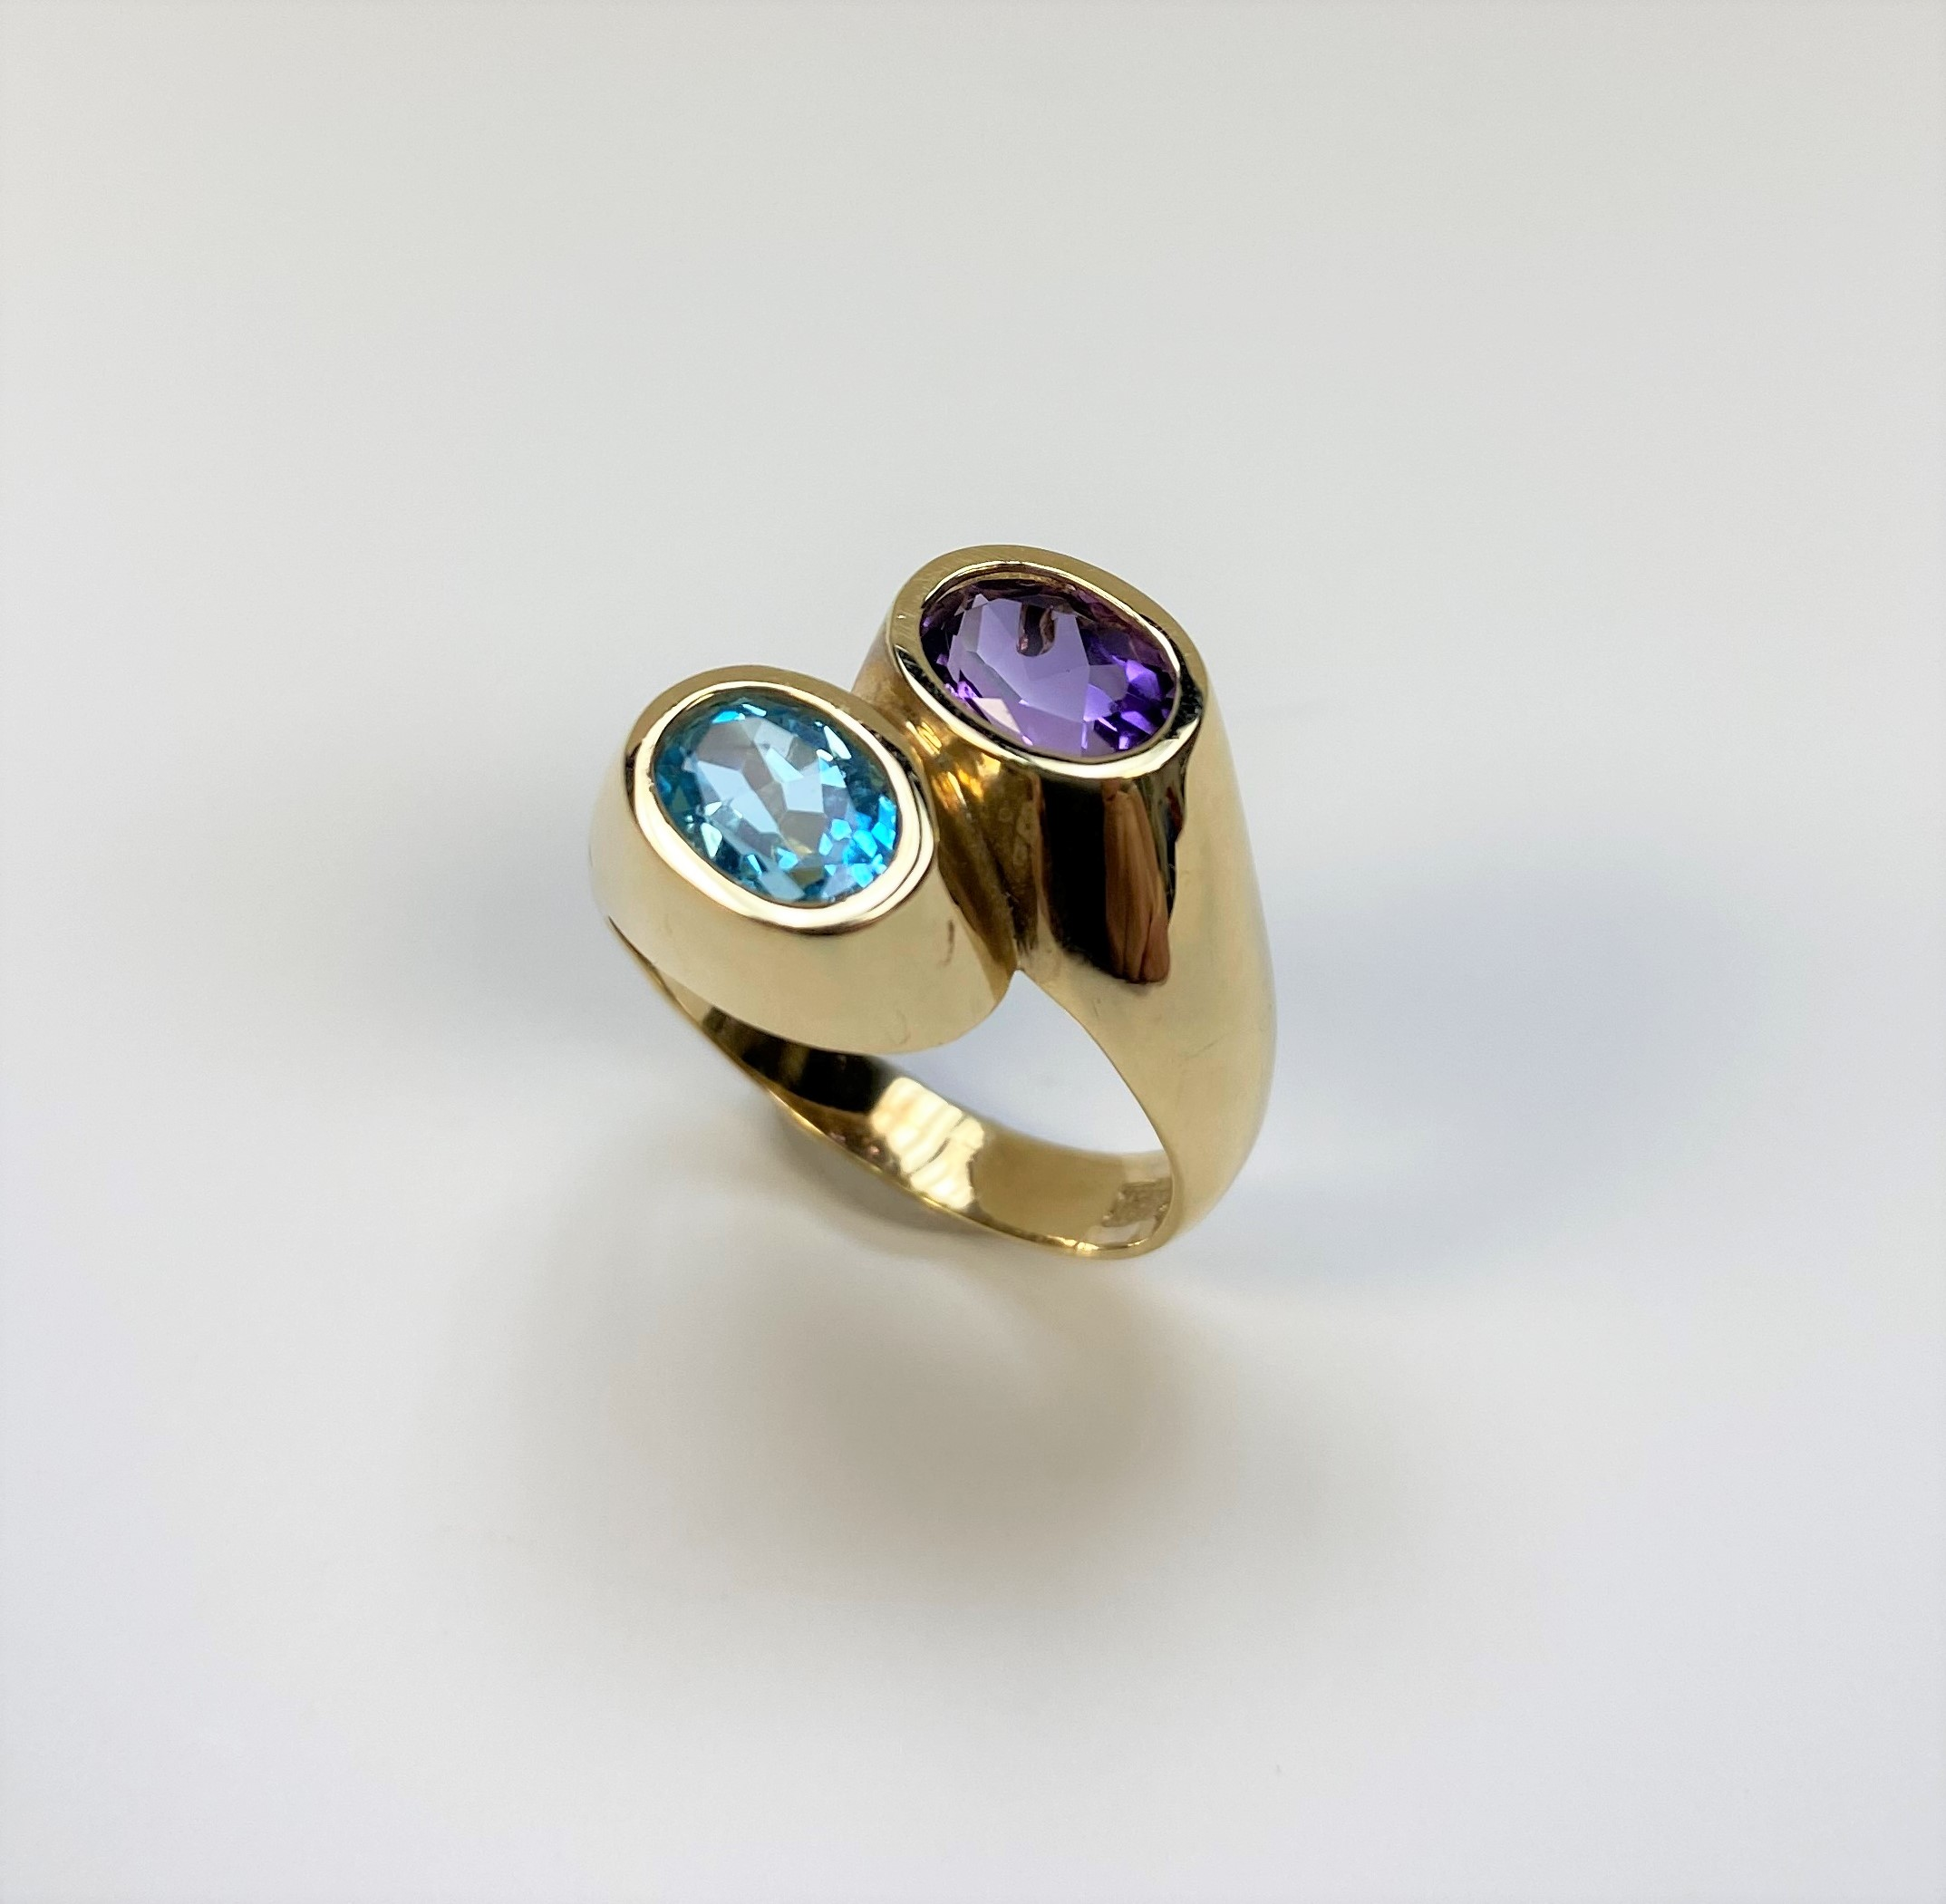 By-Pass Style Amethyst Topaz Ring